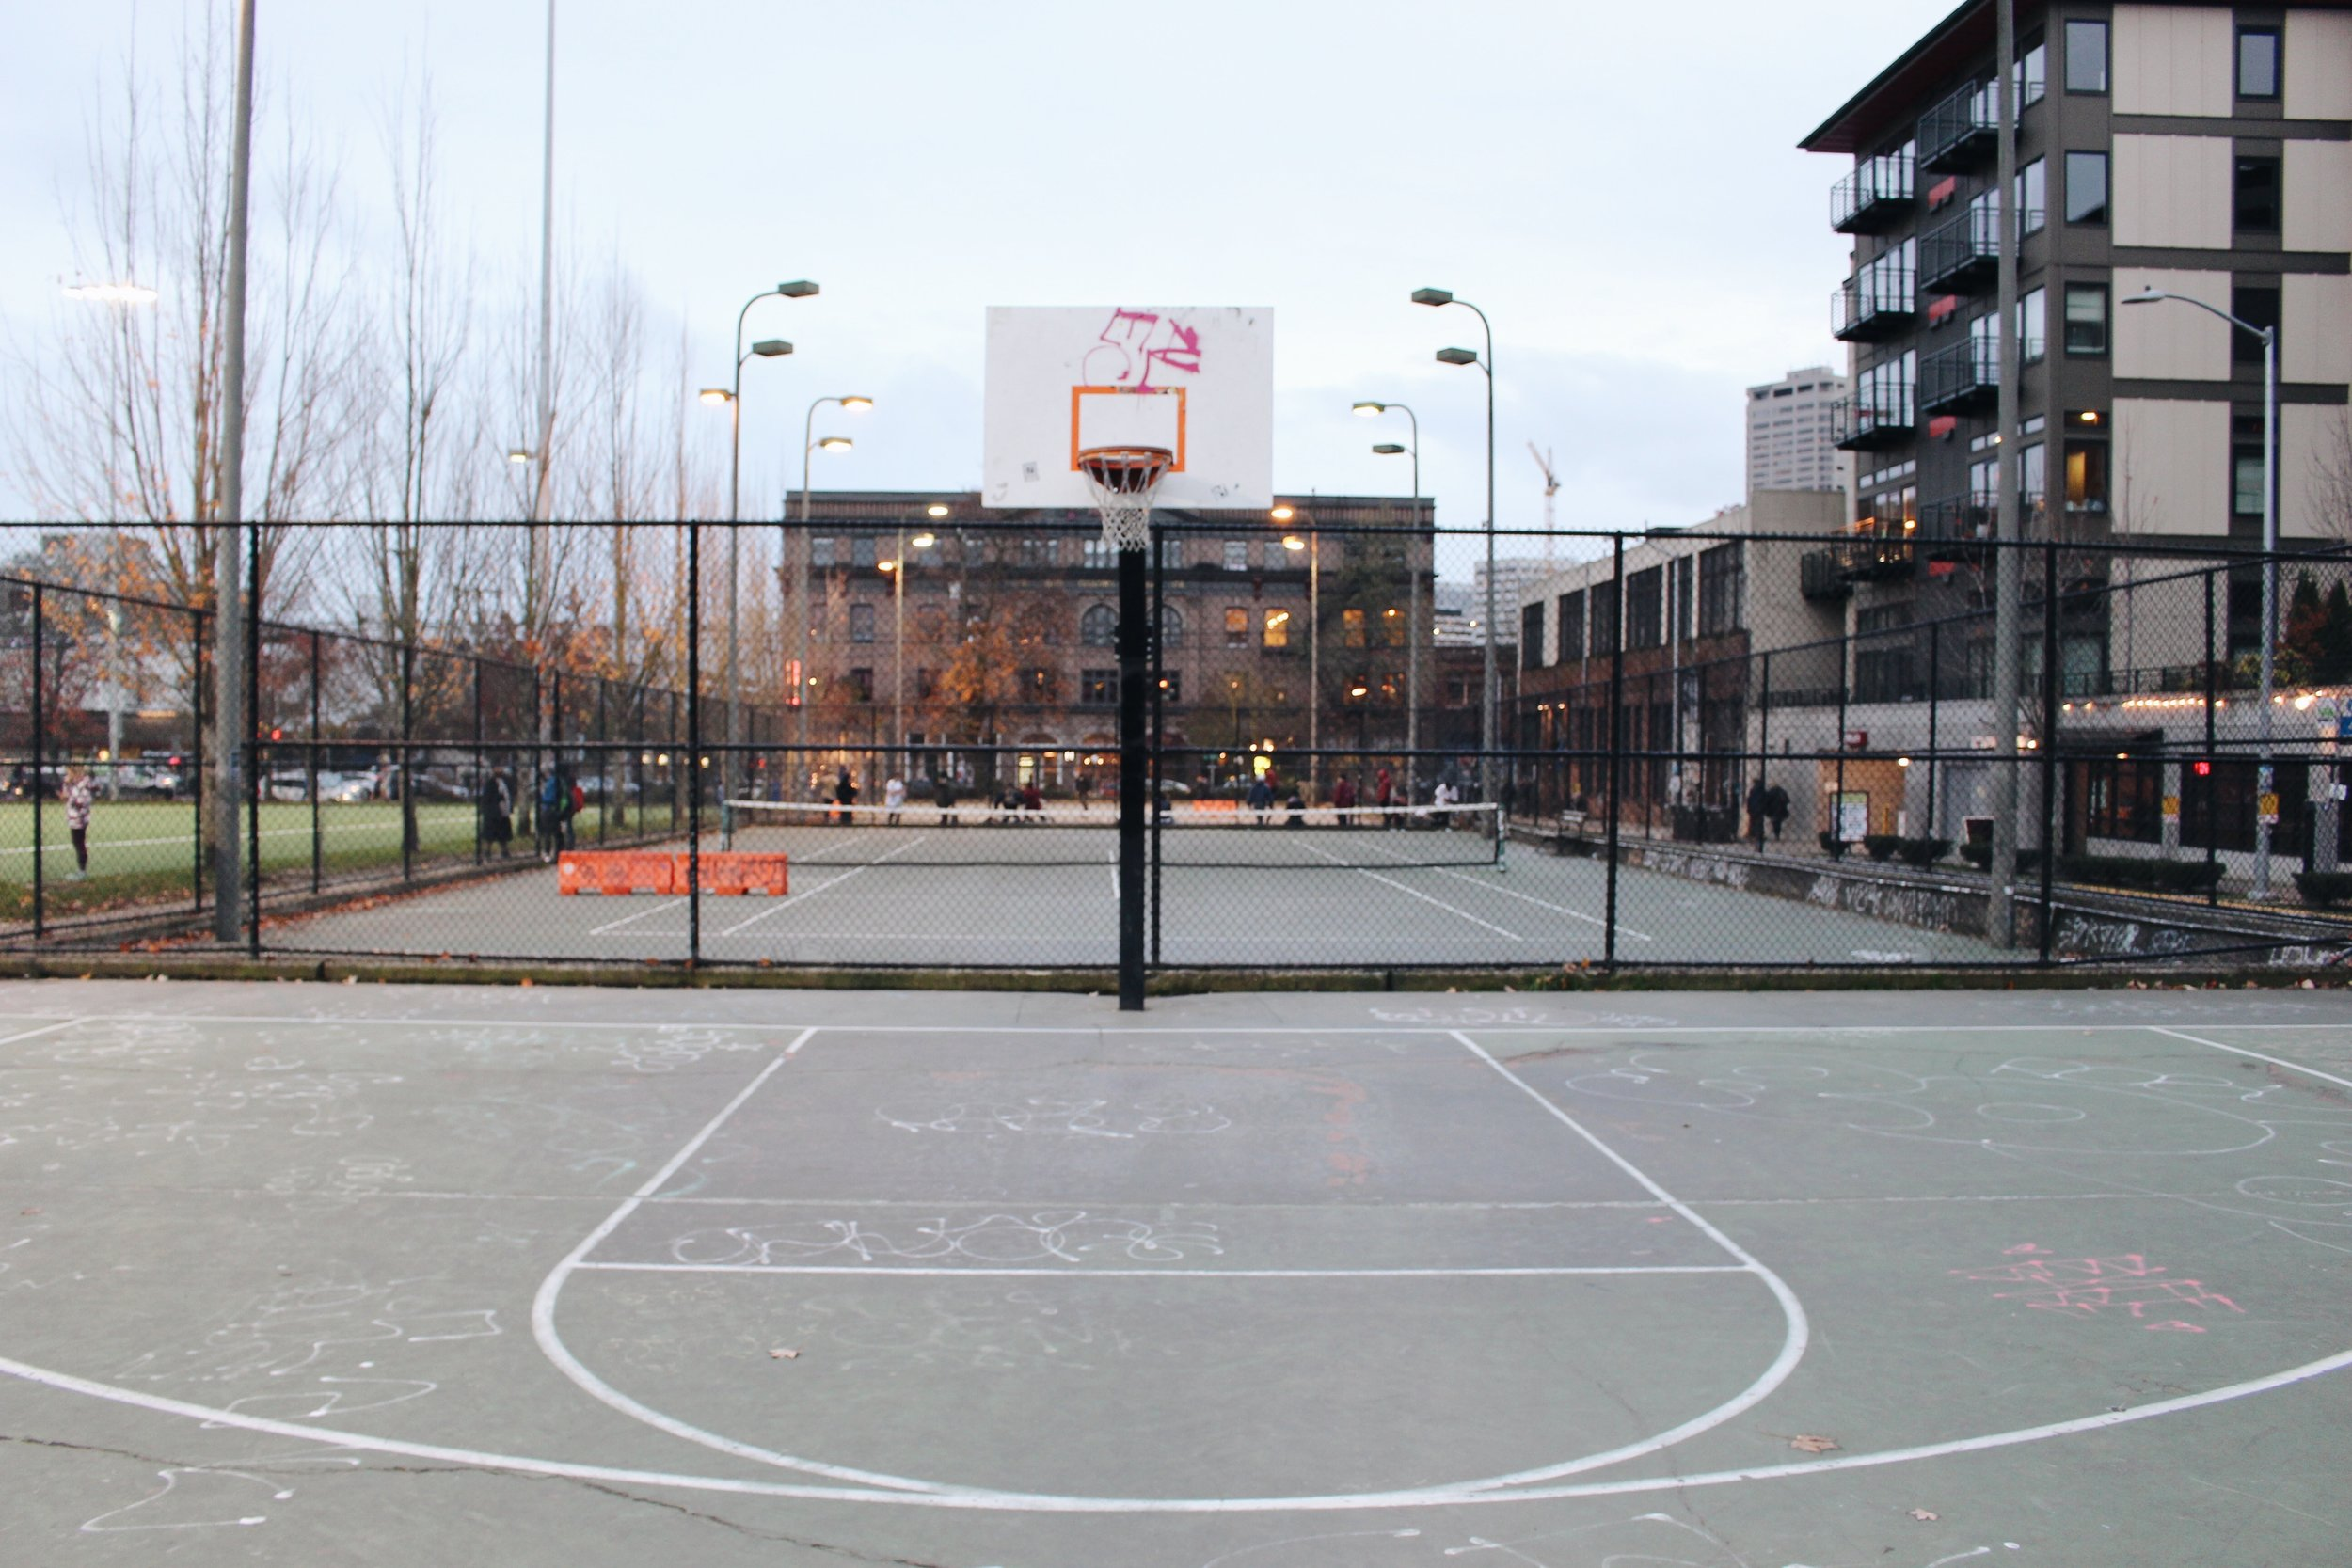 SPORT - Find a local park or court. You can burn anywhere between 250-350 calories by playing basketball or even just shooting hoops for 30 minutes and it's much more fun than being on a machine at the gym. Check our local listing for parks. (This can make for a cool impromptu photoshoot, too!)